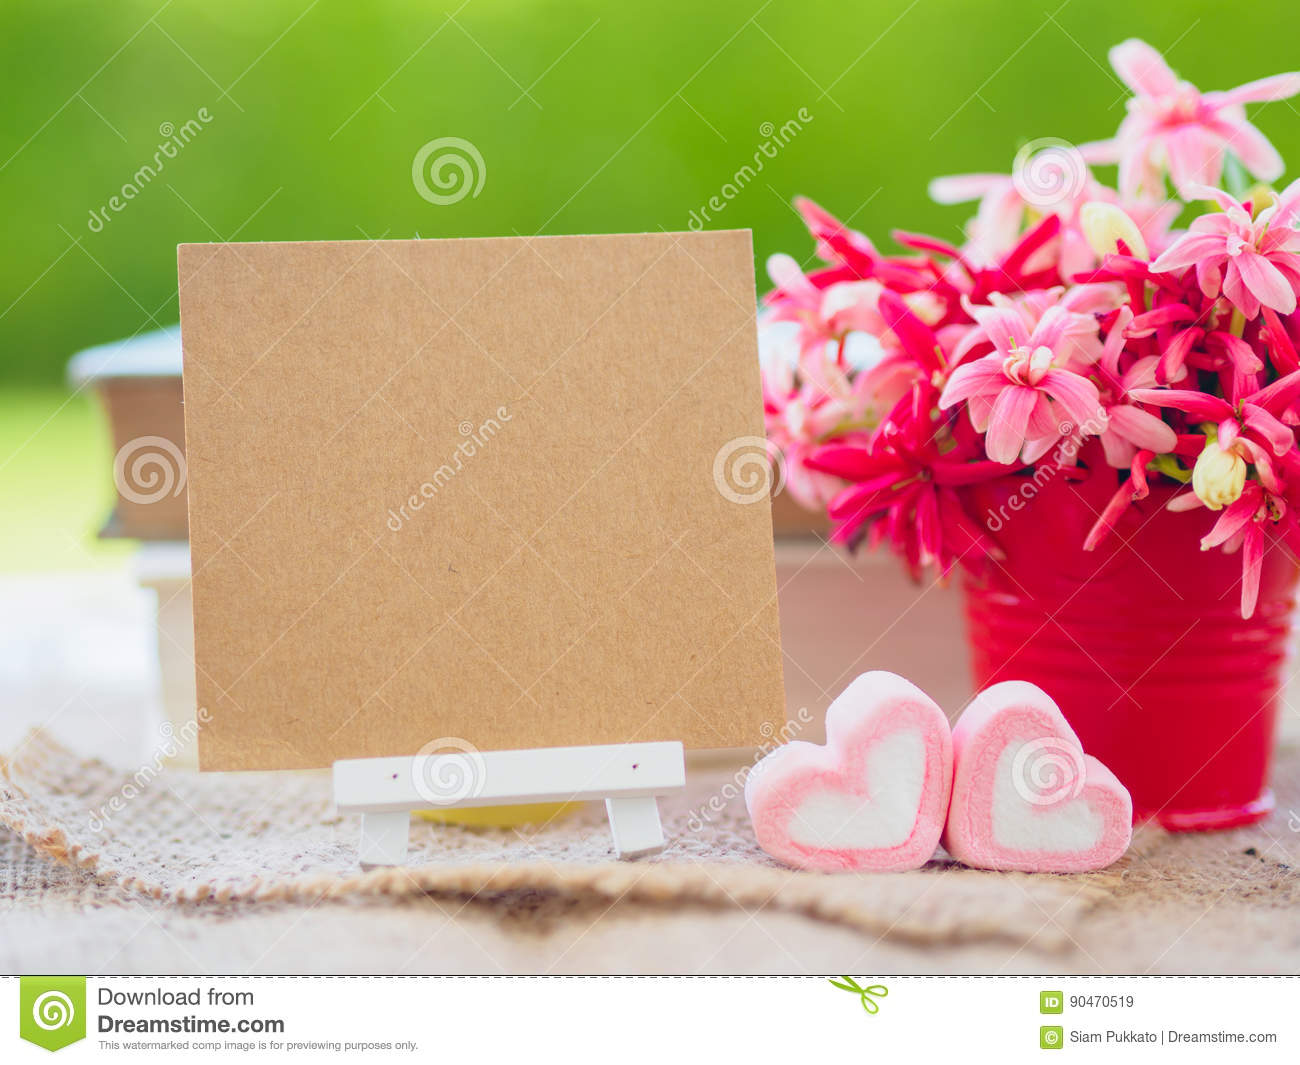 Poster Mock Up Template With Flower Bouquet, Stock Image - Image of ...